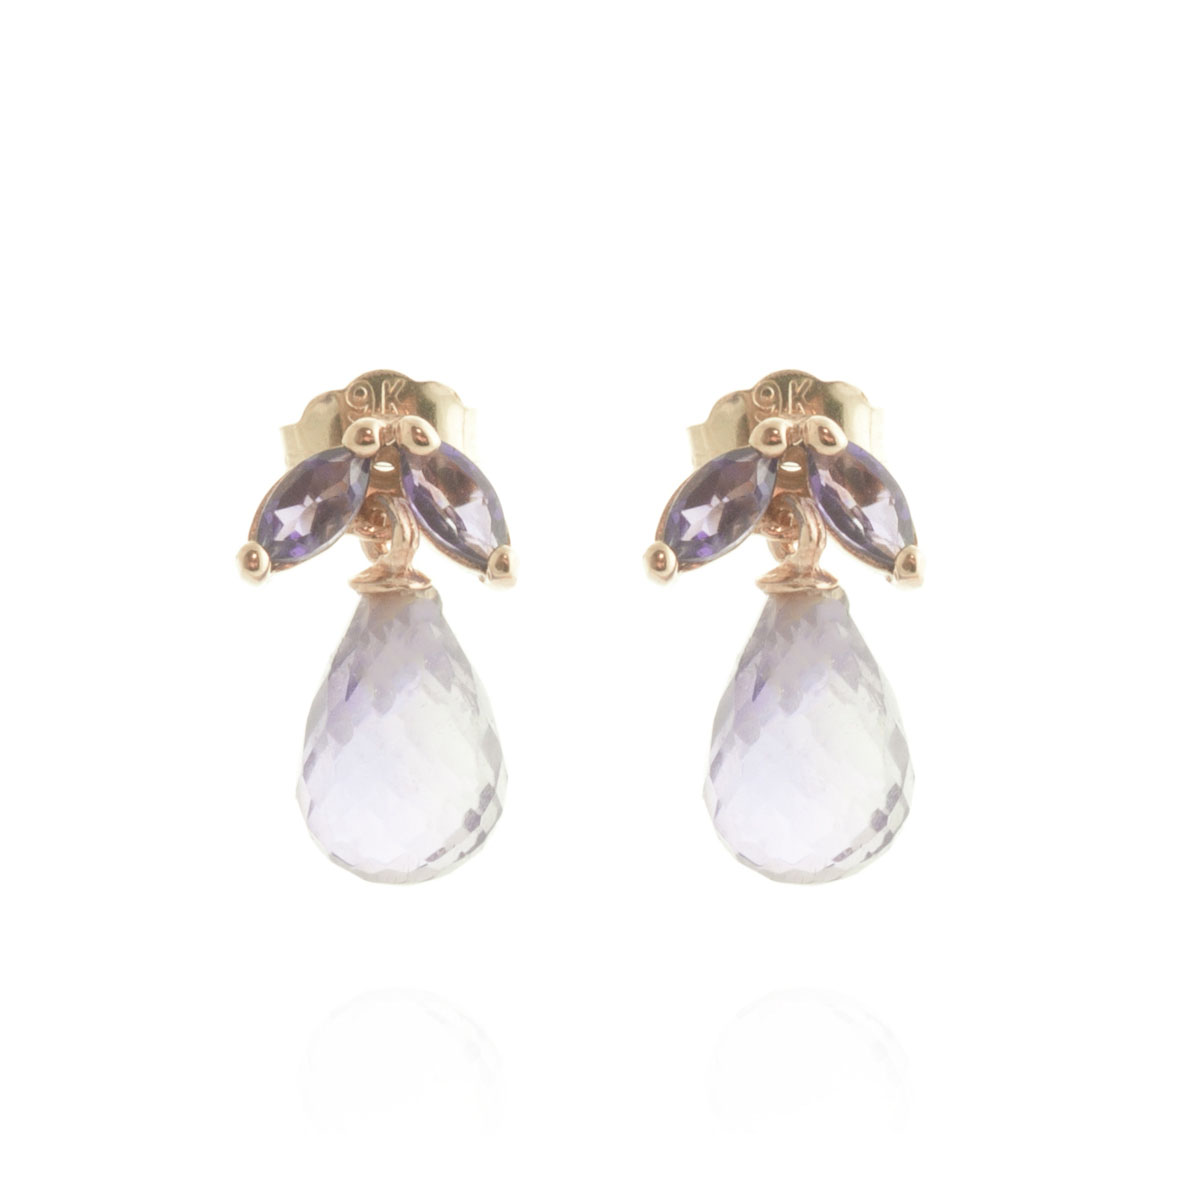 Amethyst Snowdrop Stud Earrings 3.4 ctw in 9ct Rose Gold